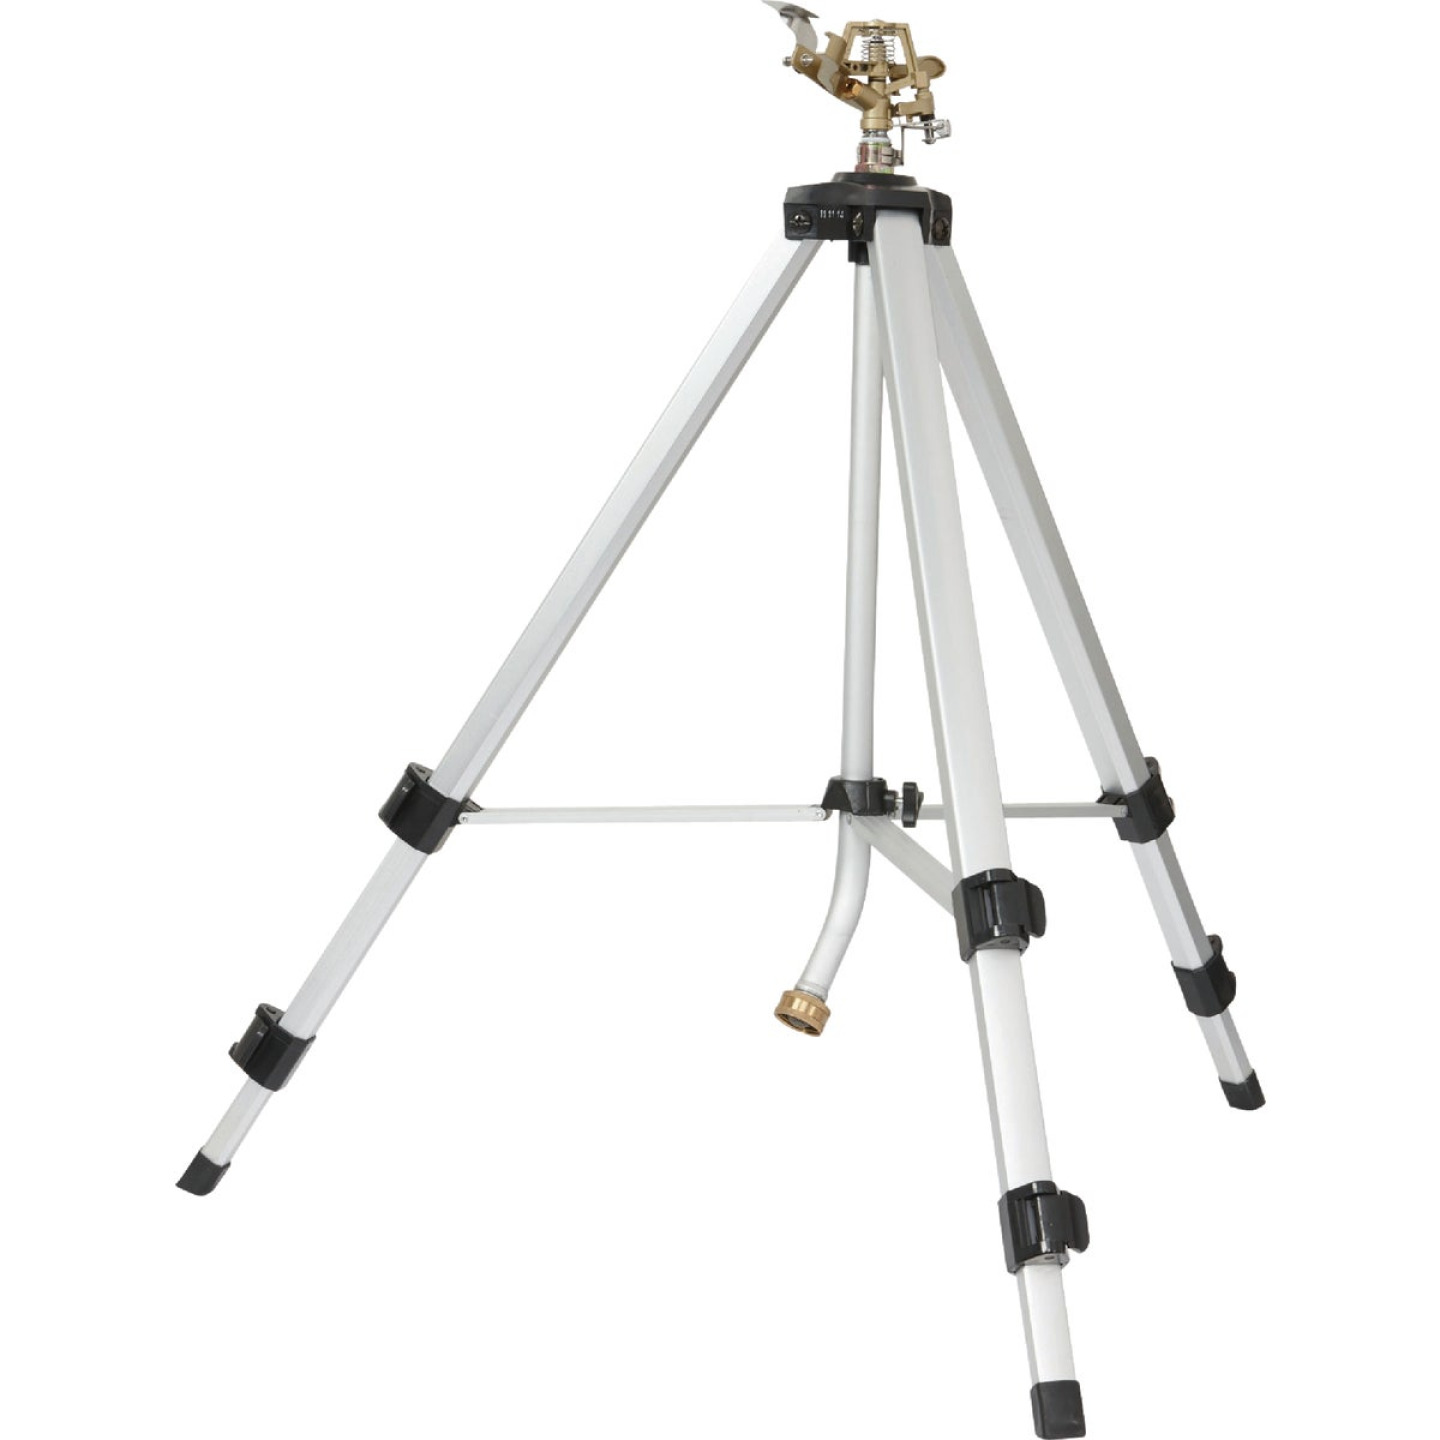 Melnor 85 Ft. Dia. Metal Tripod Impulse Sprinkler Image 1